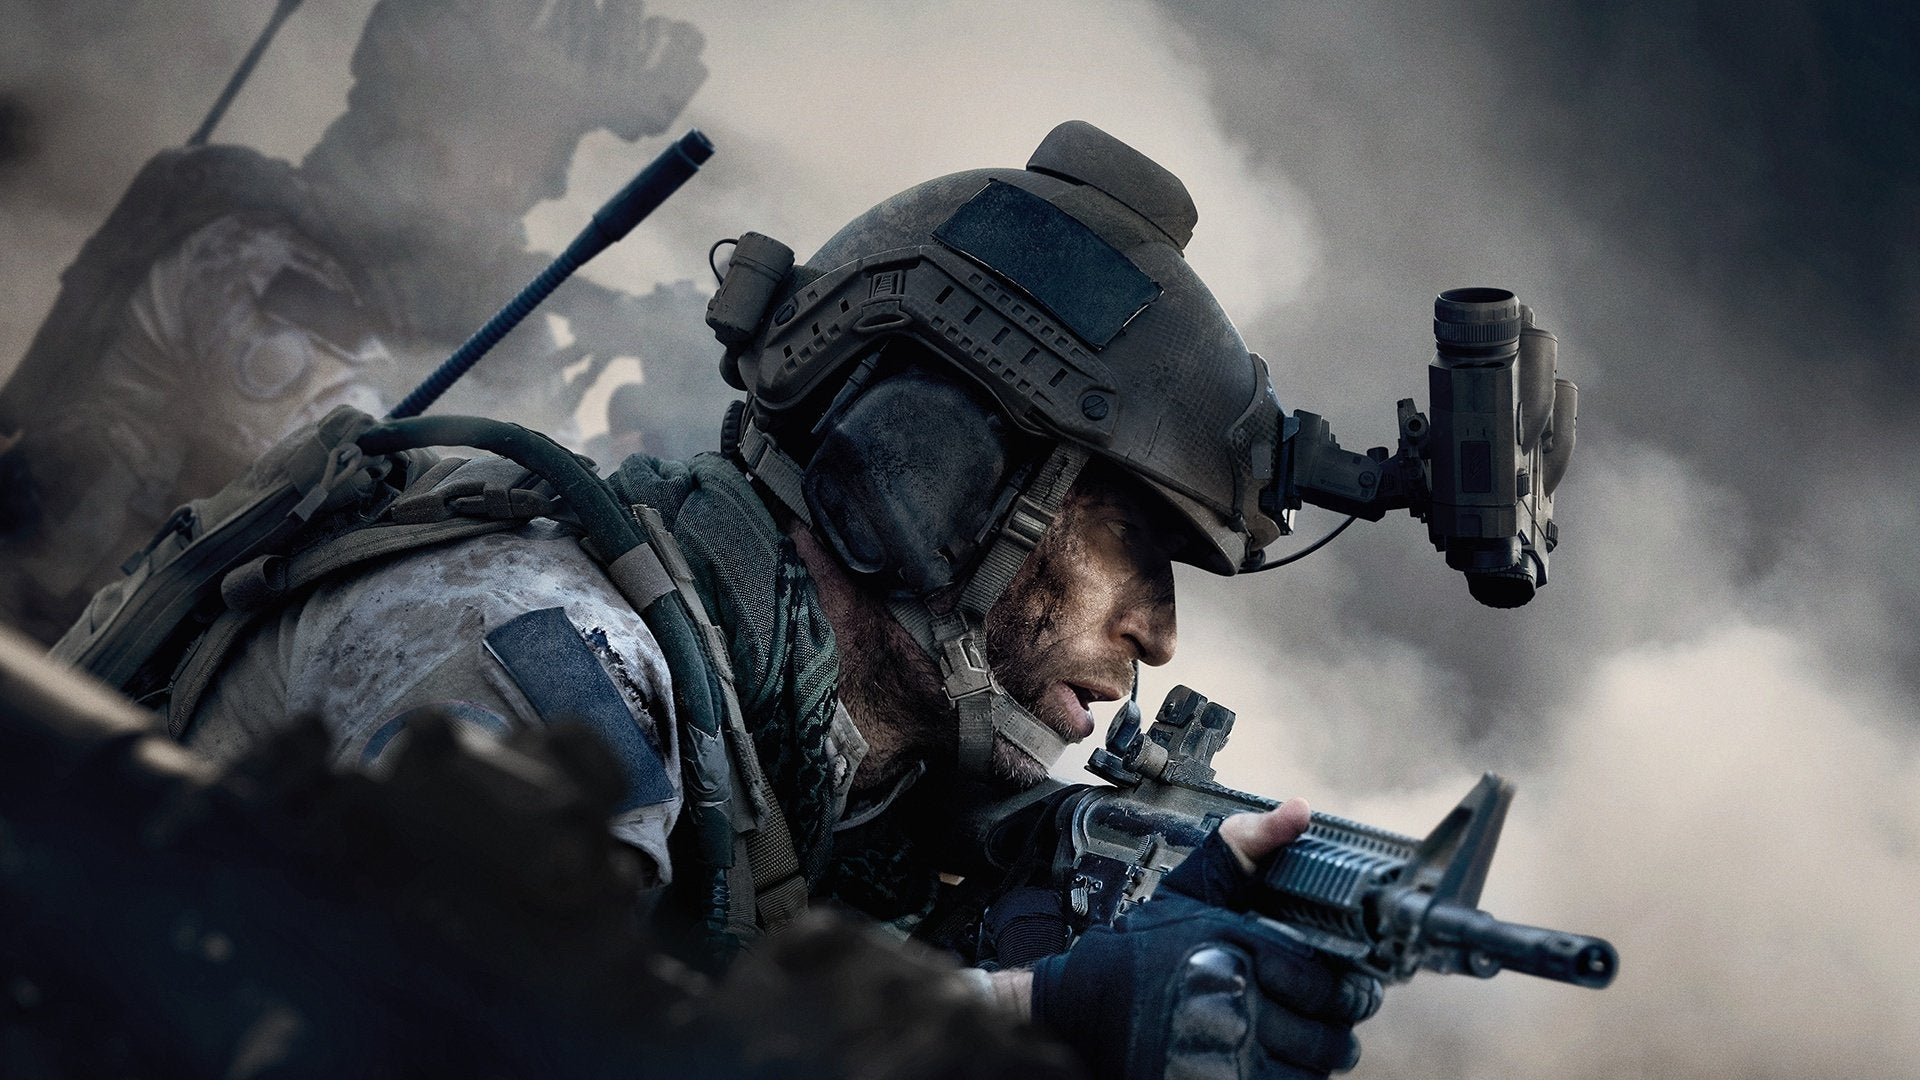 Modern Warfare takes a page from Fortnite's book with battle pass progression system